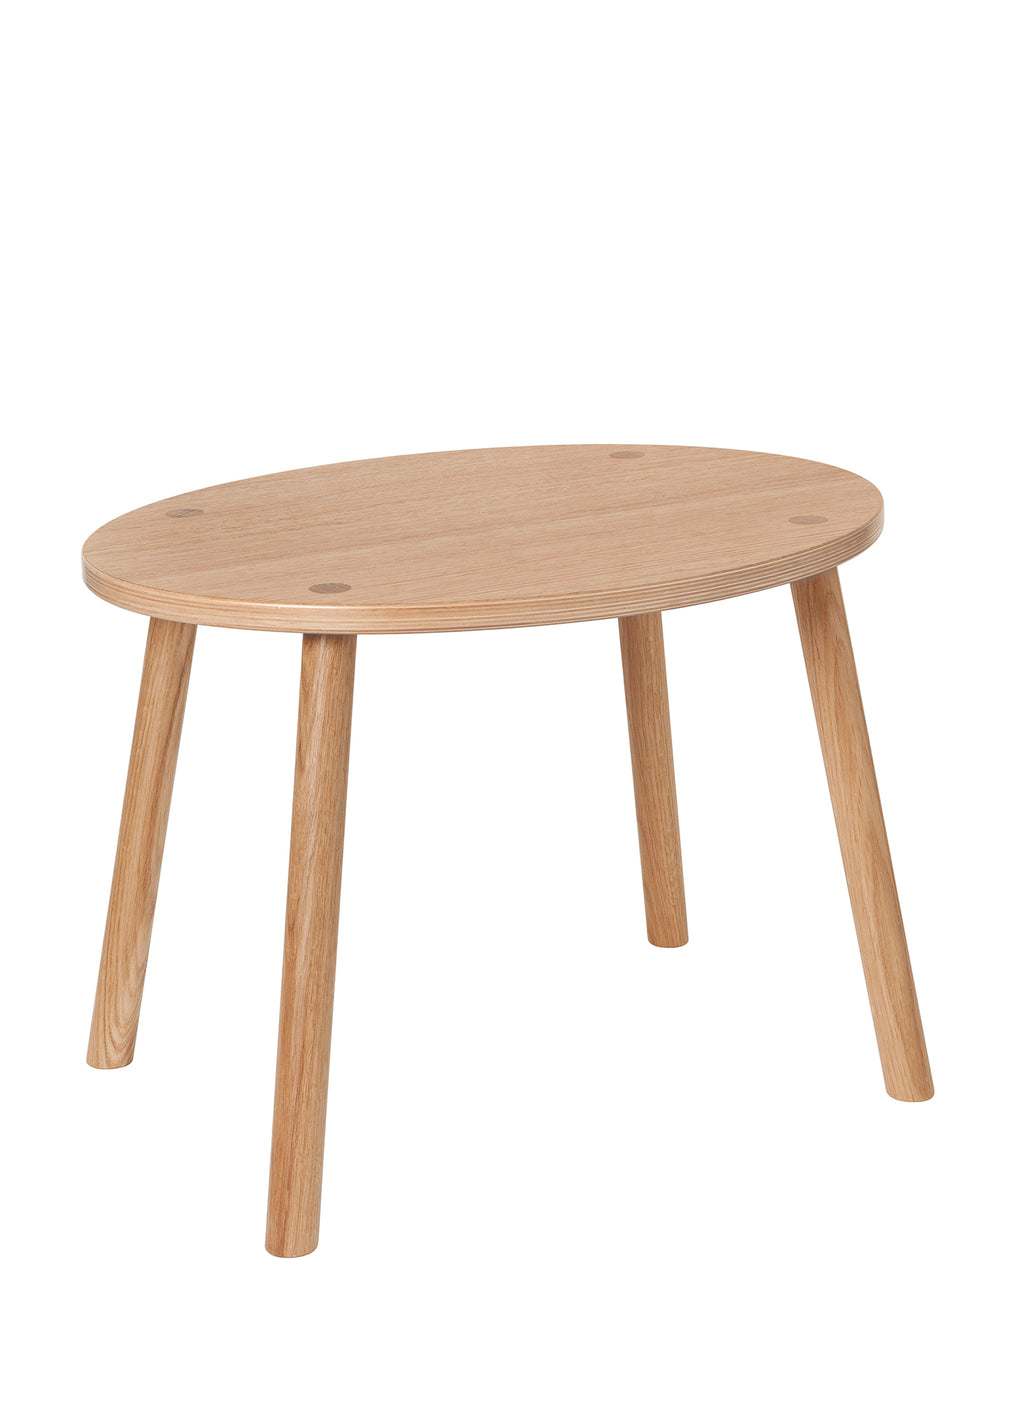 MOUSE TABLE (2-5 YEARS) // LACQUERED OAK